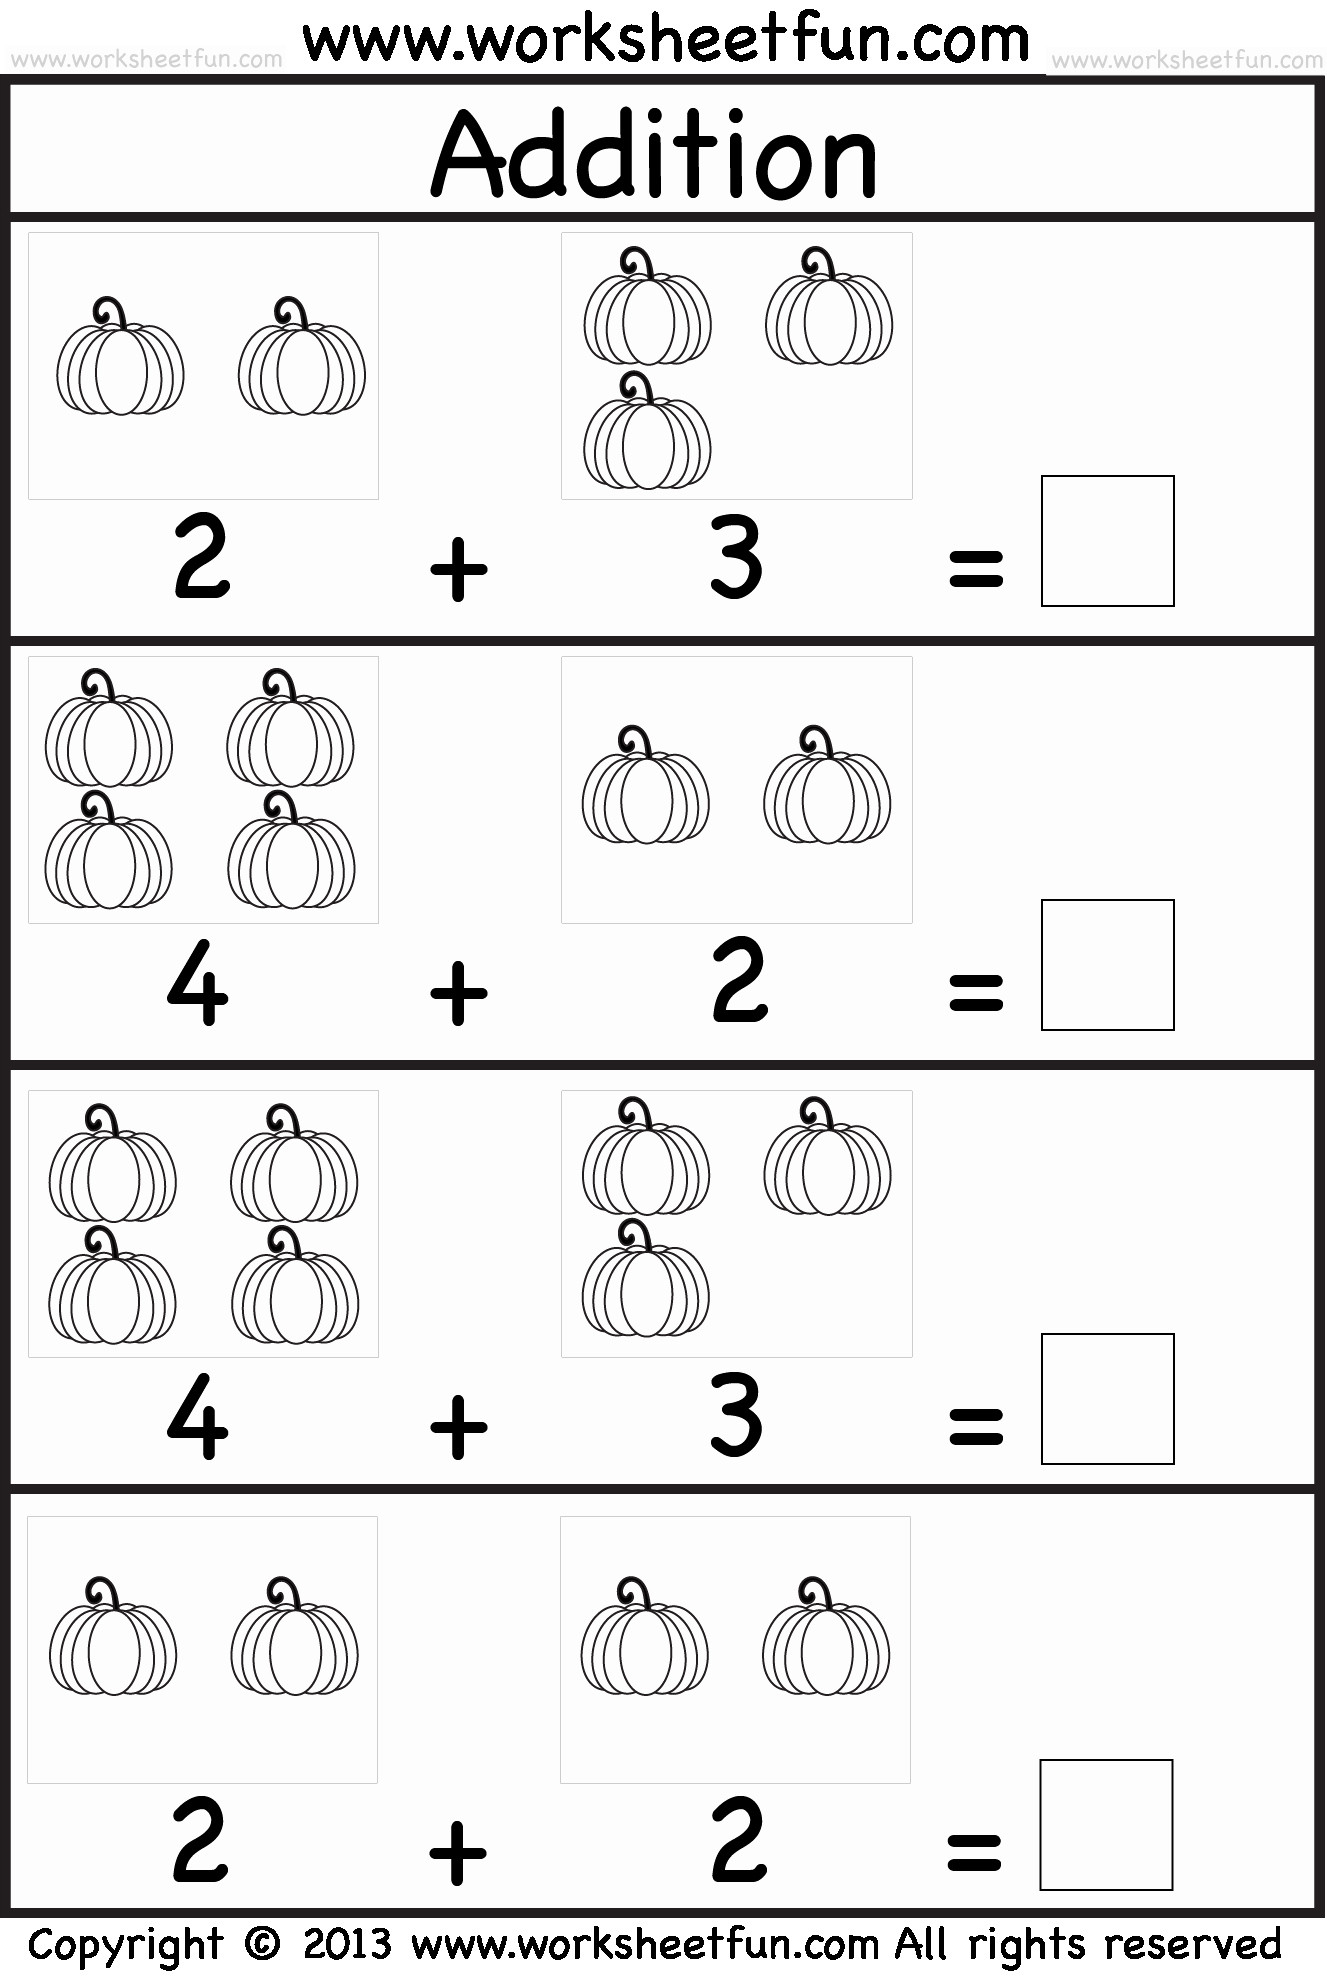 Preschool Addition Worksheets Printable Kindergarten Math Worksheets for Printable Kindergarten